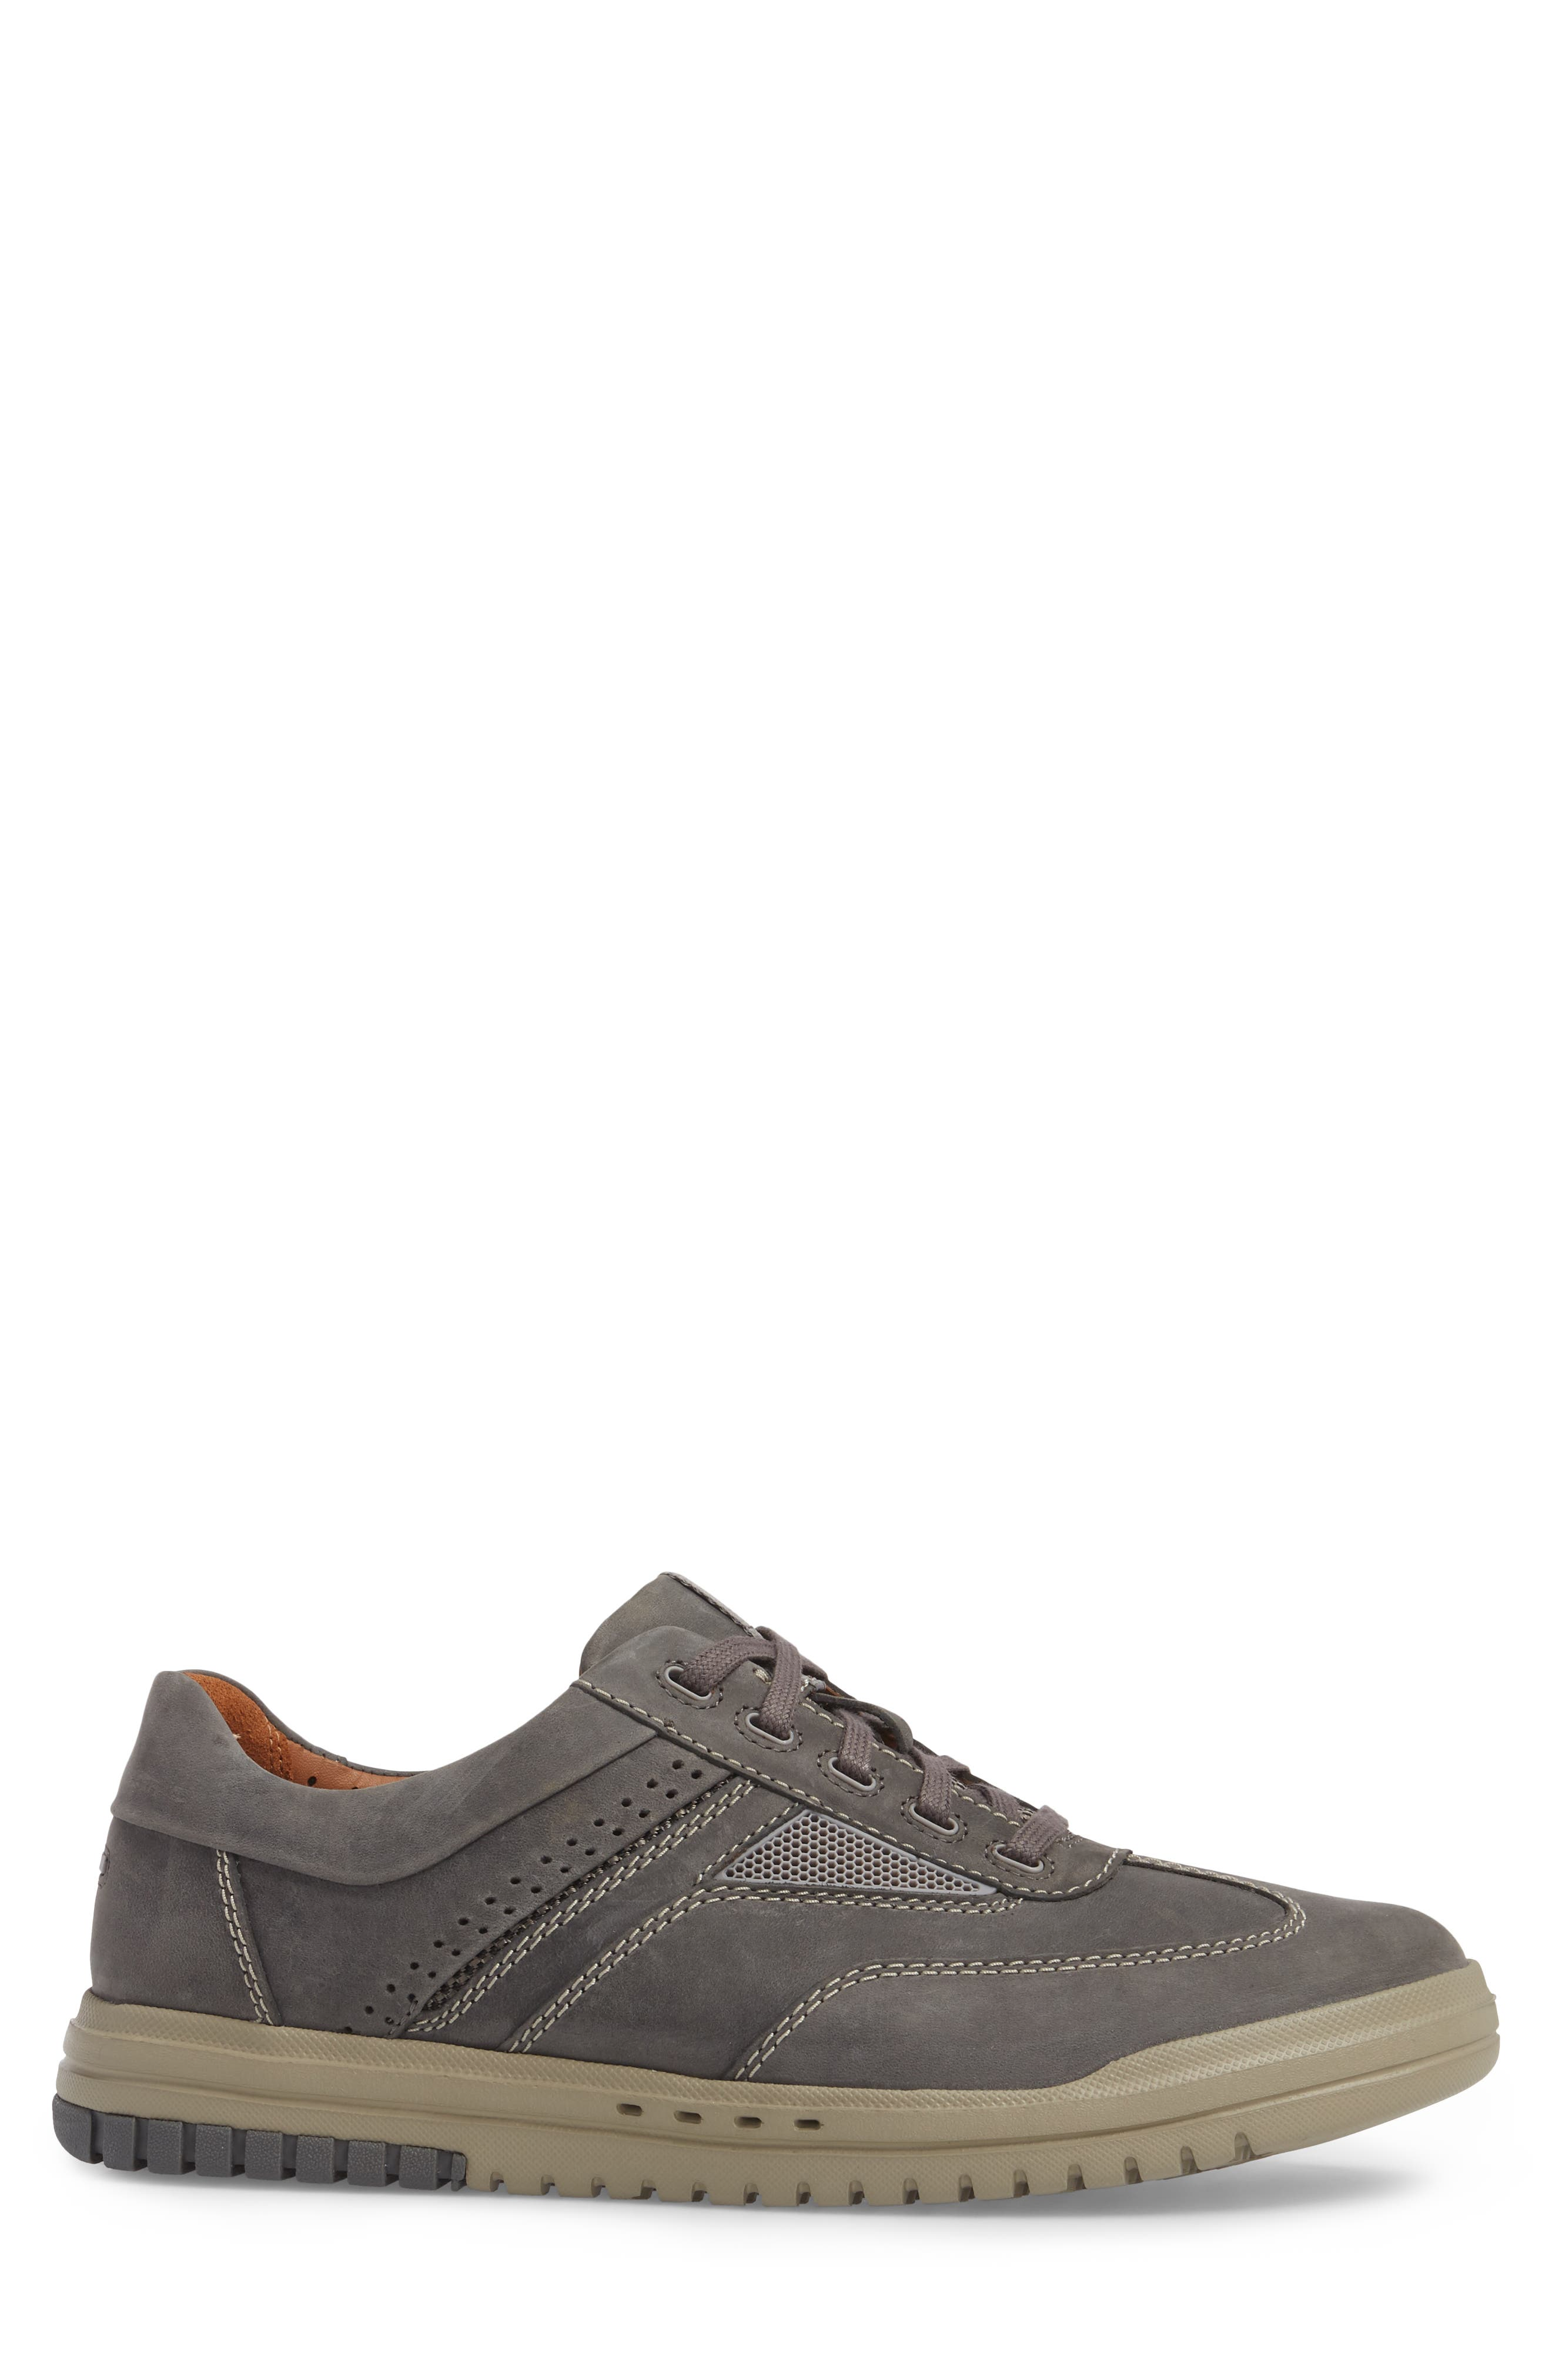 Unrhombus Low Top Sneaker,                             Alternate thumbnail 3, color,                             Dark Grey Leather